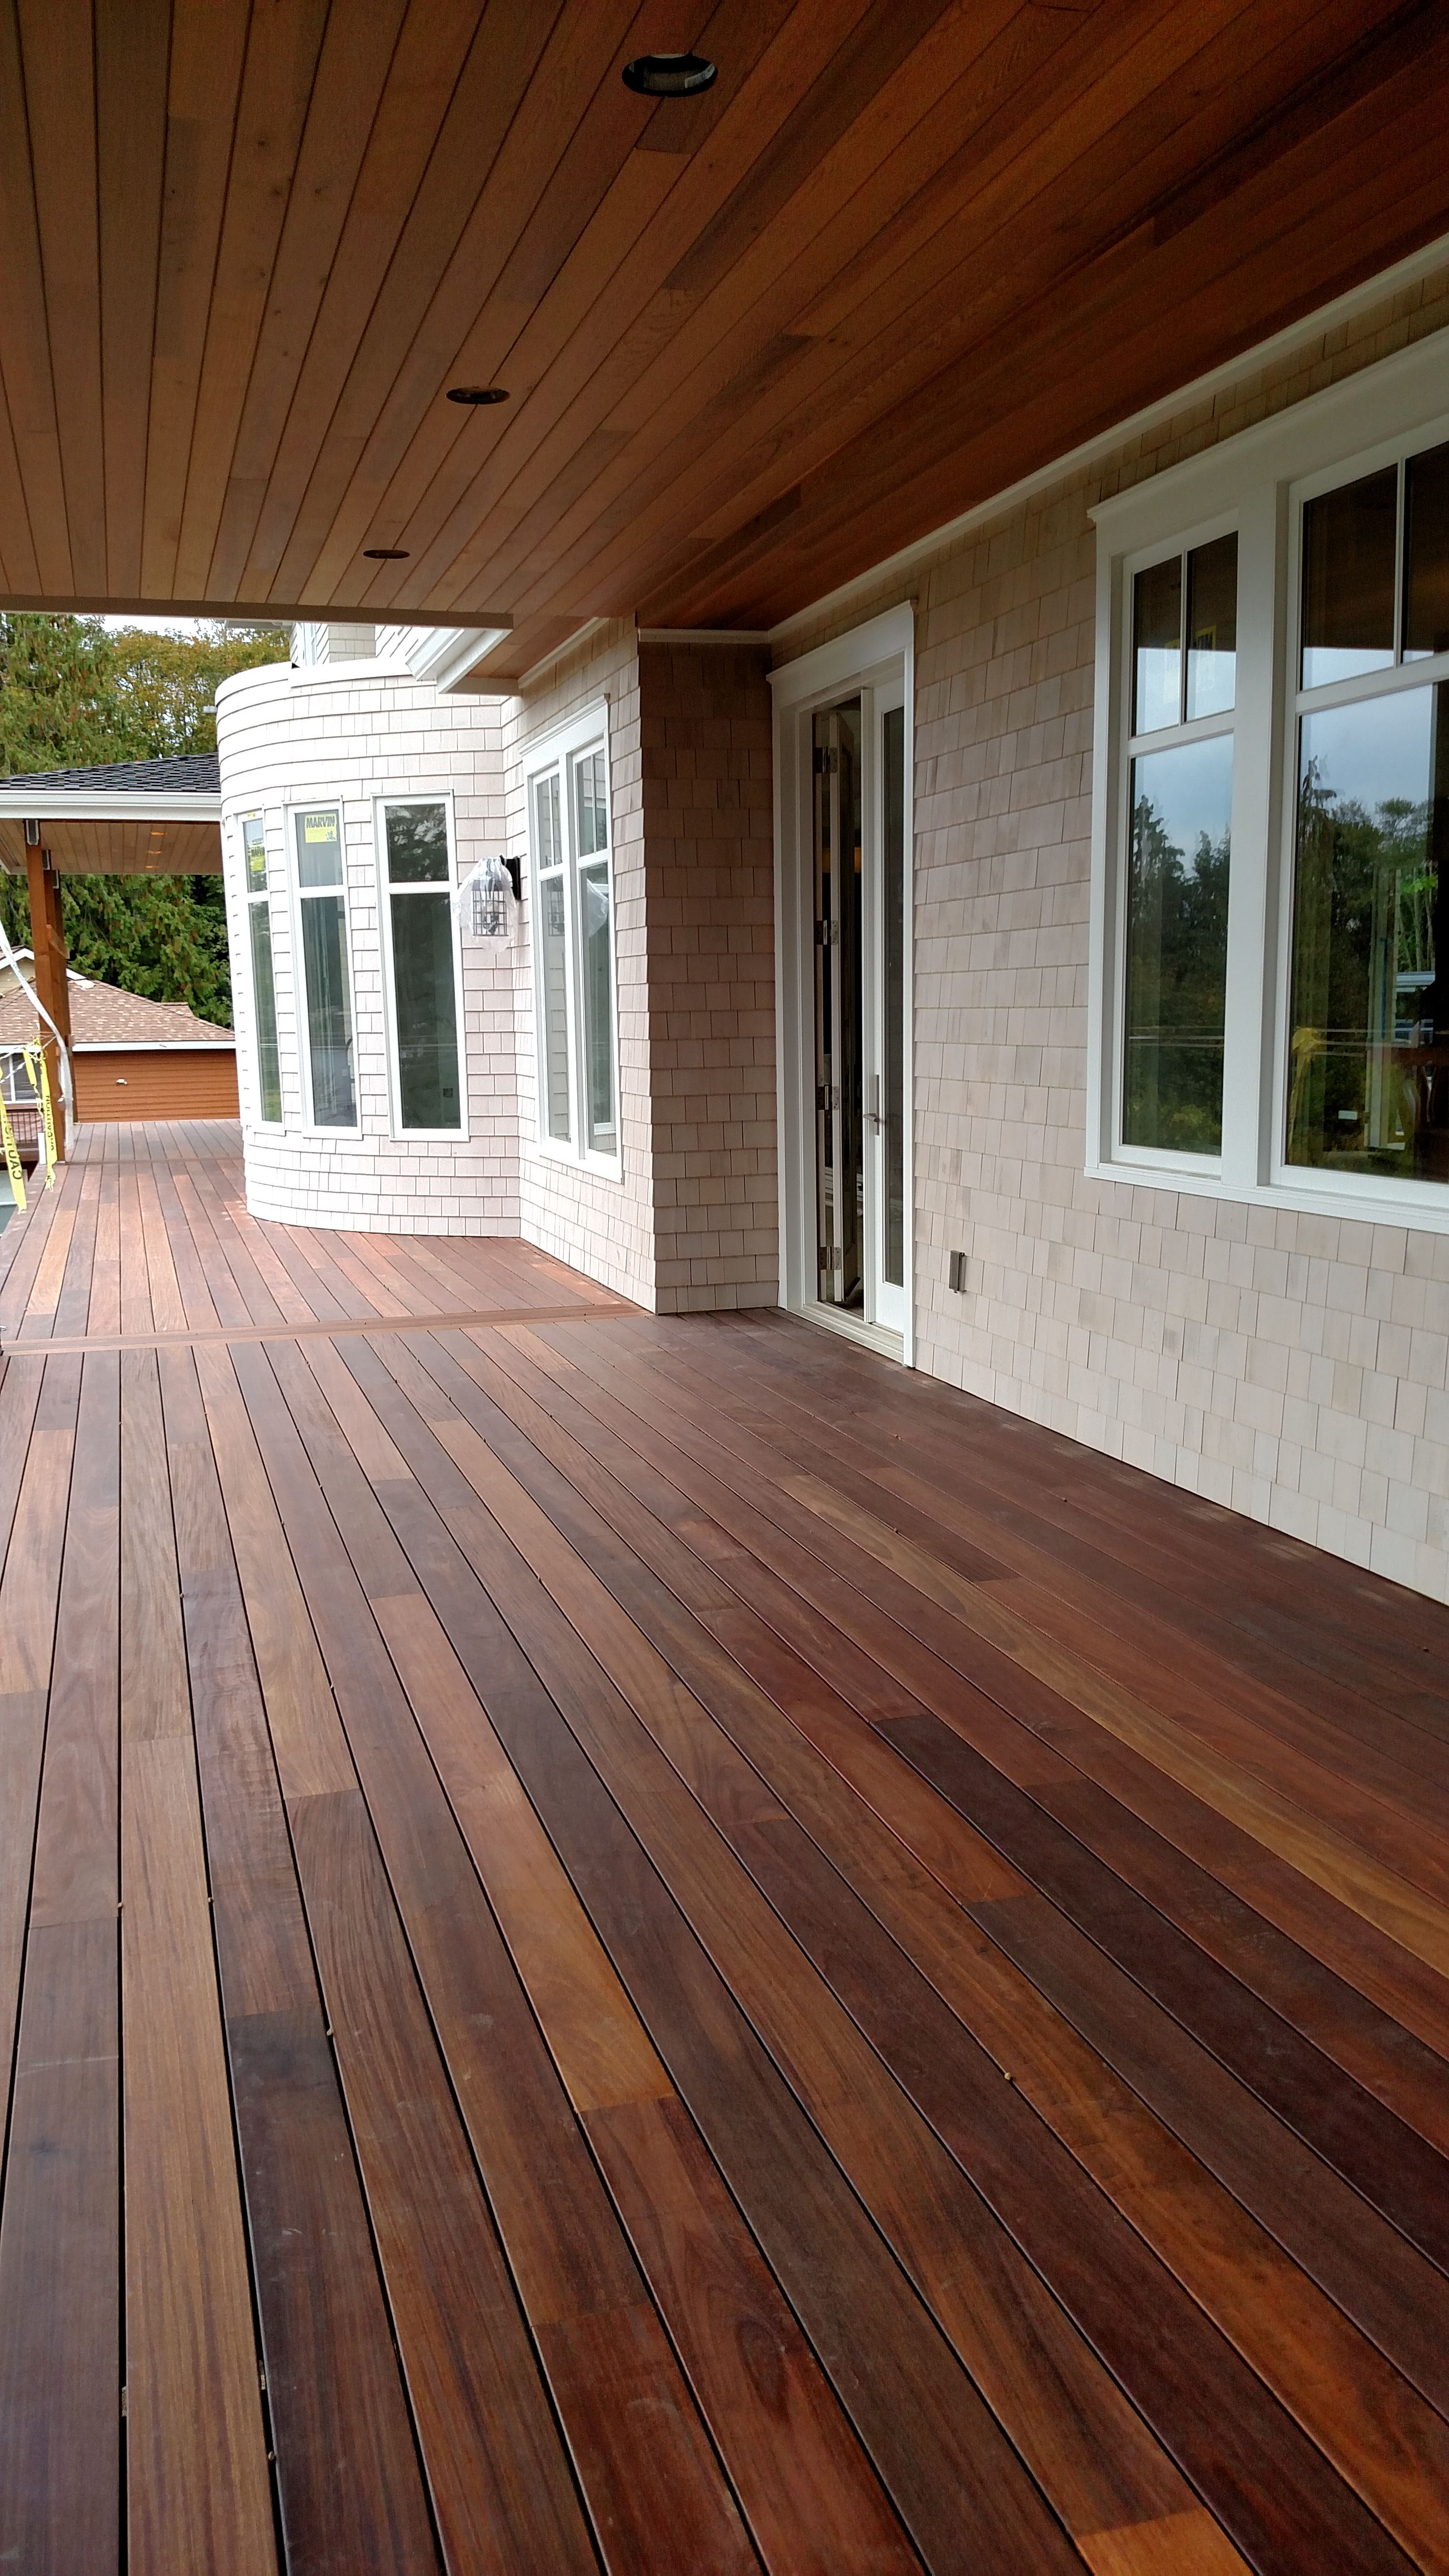 Mahogany Decking Applied With Penofin Exotic Hardwood Exterior Stain regarding size 2952 X 5248